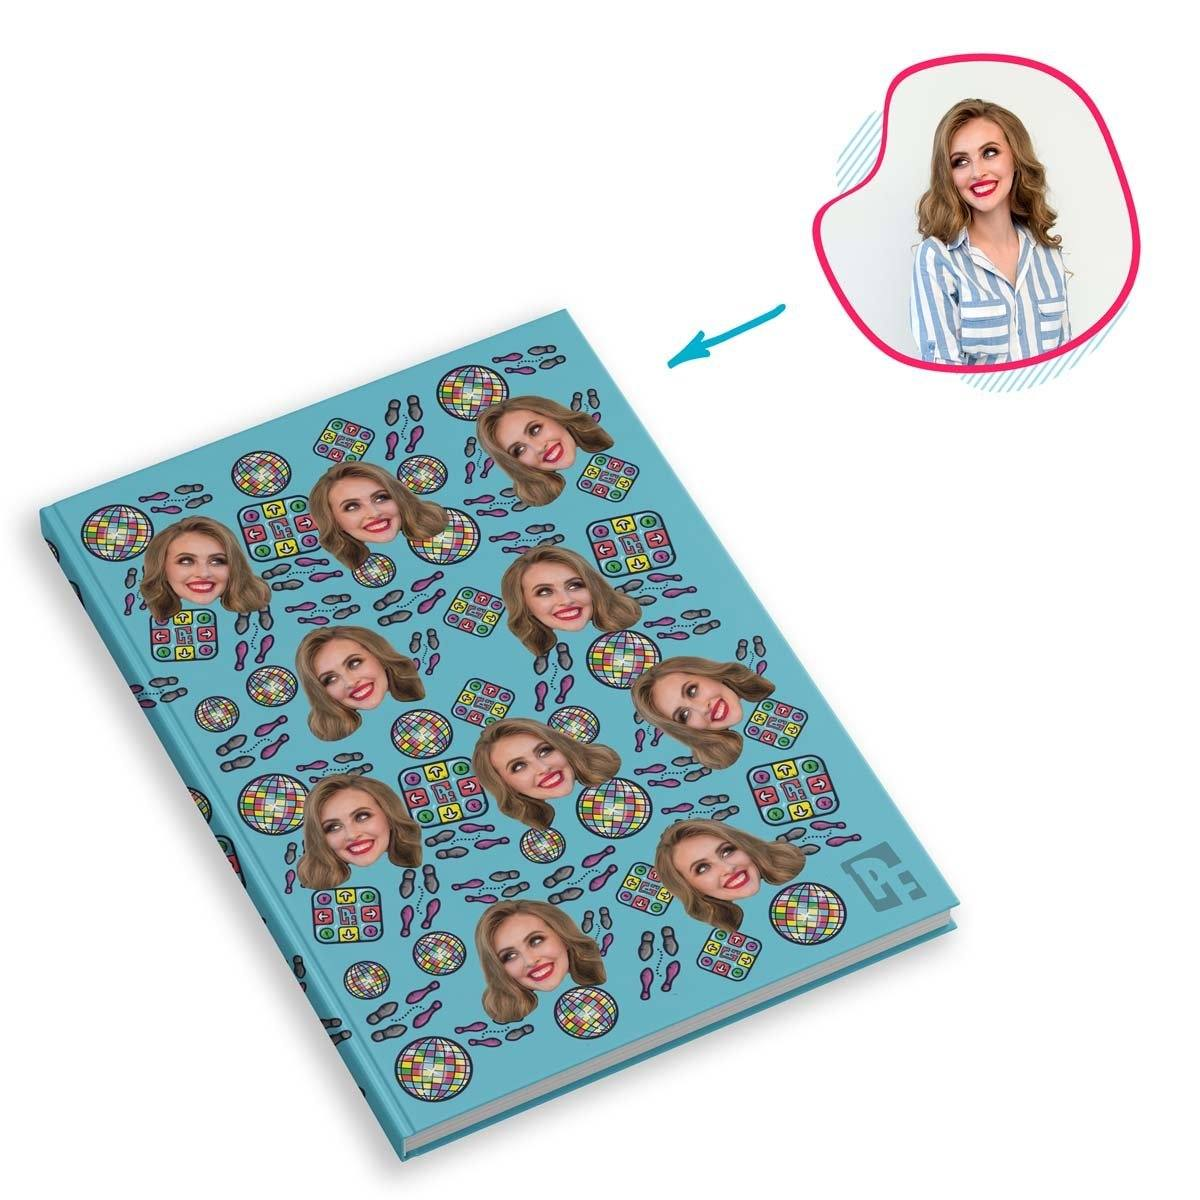 blue Dancing Notebook personalized with photo of face printed on them